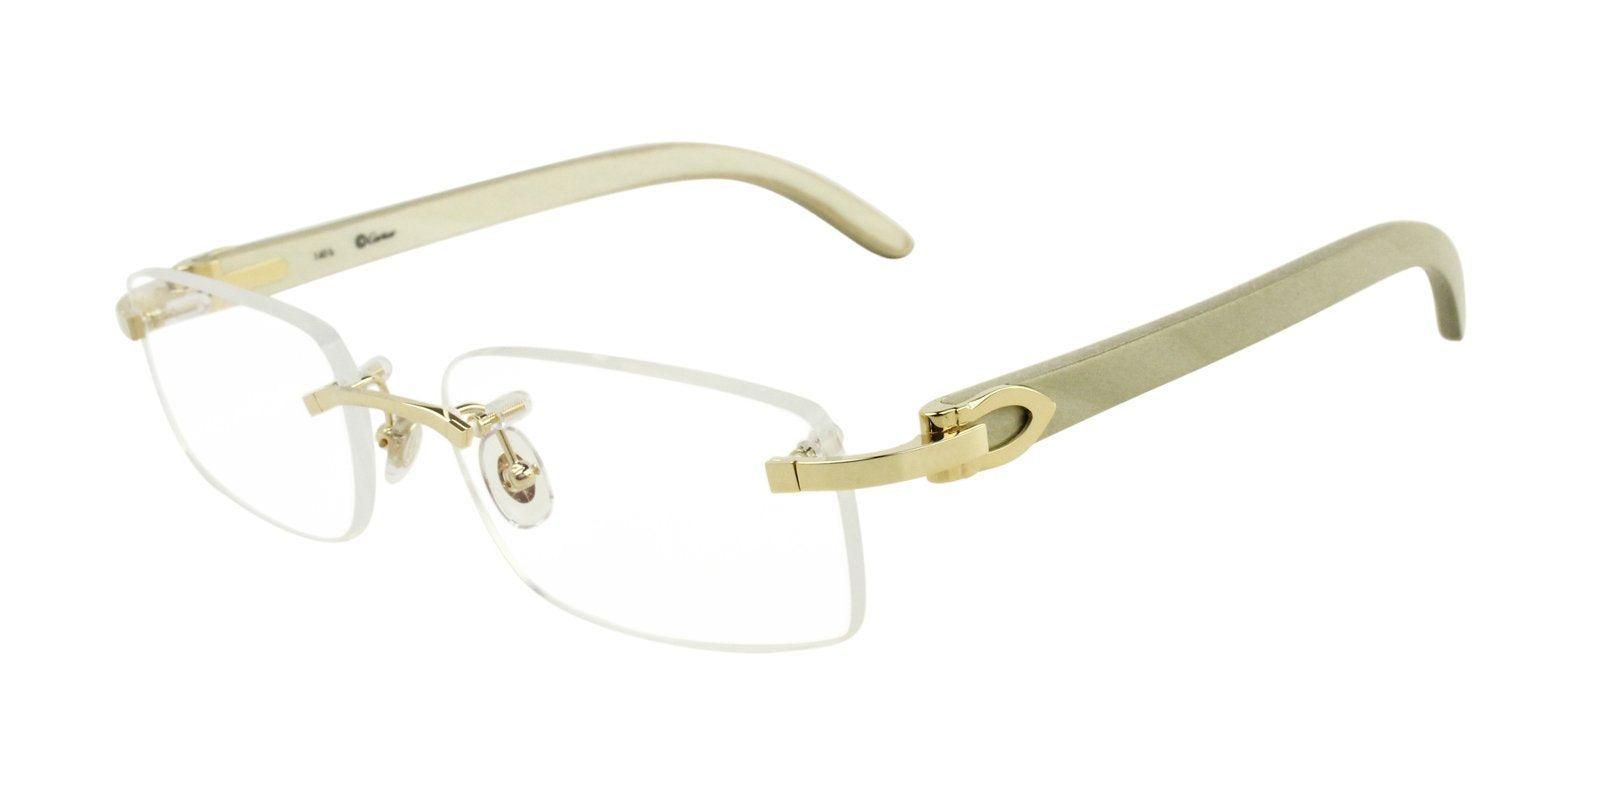 Cartier - C Decor Gold Rimless Unisex Eyeglasses - 53mm-Eyeglasses-Designer Eyes